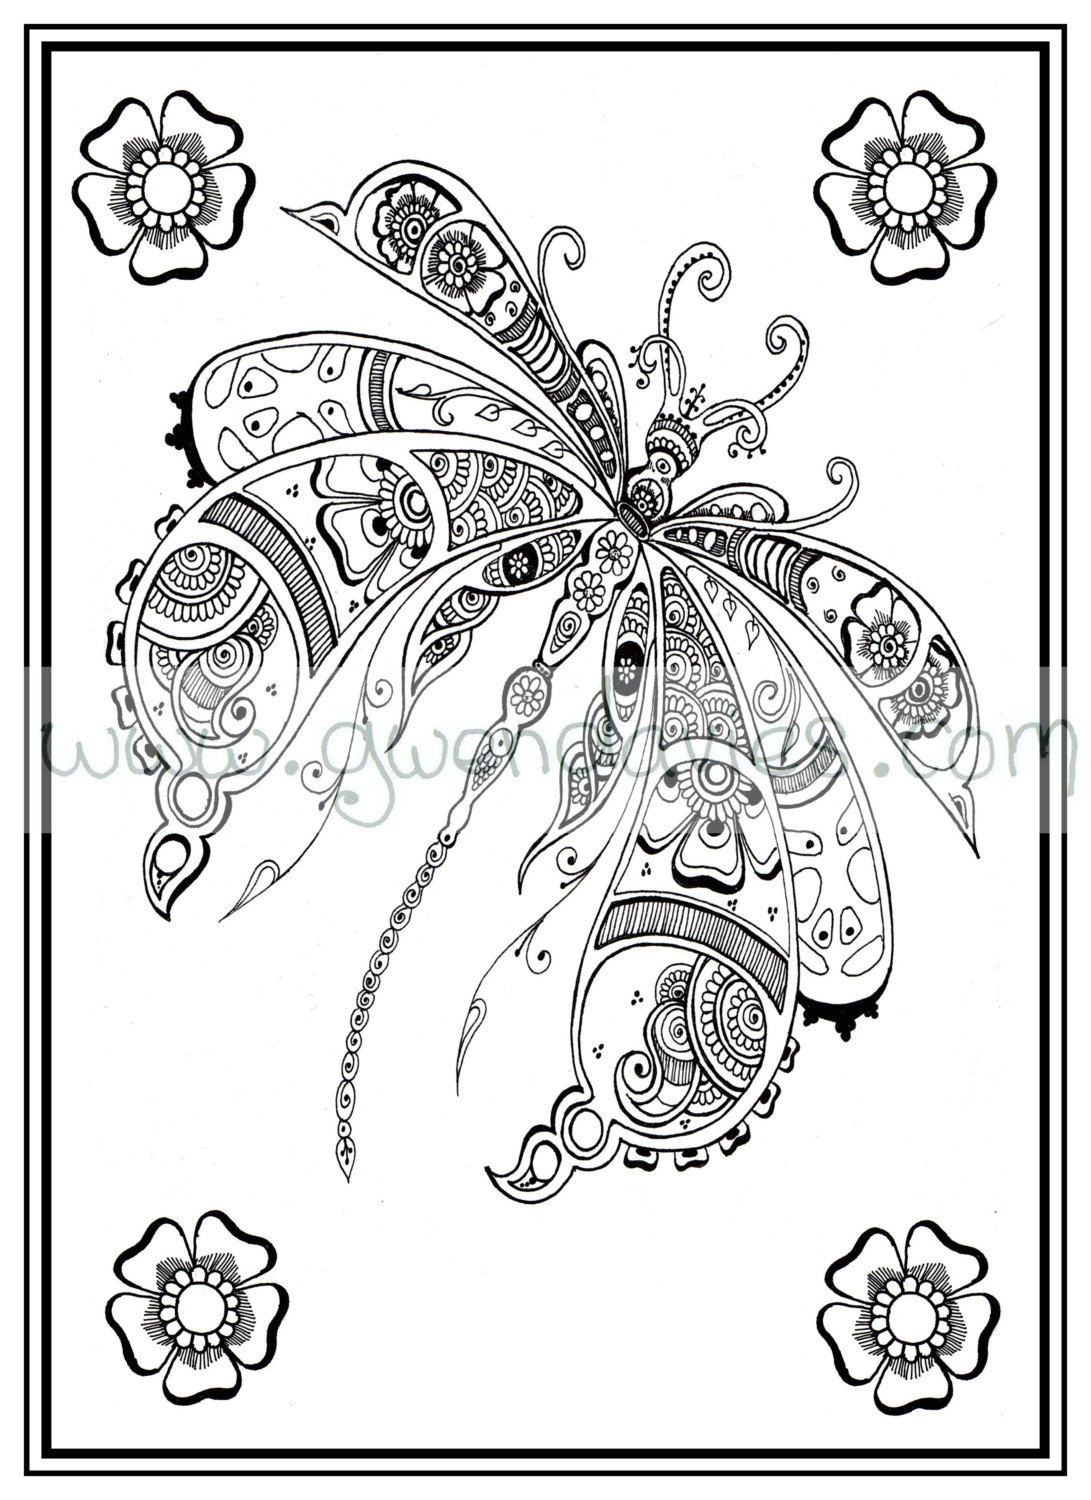 Adult Colouring In PDF Download Dragonfly Henna Zen Mandalas Garden Anti Stress Mindfulness Flowers By Gwendaviesart